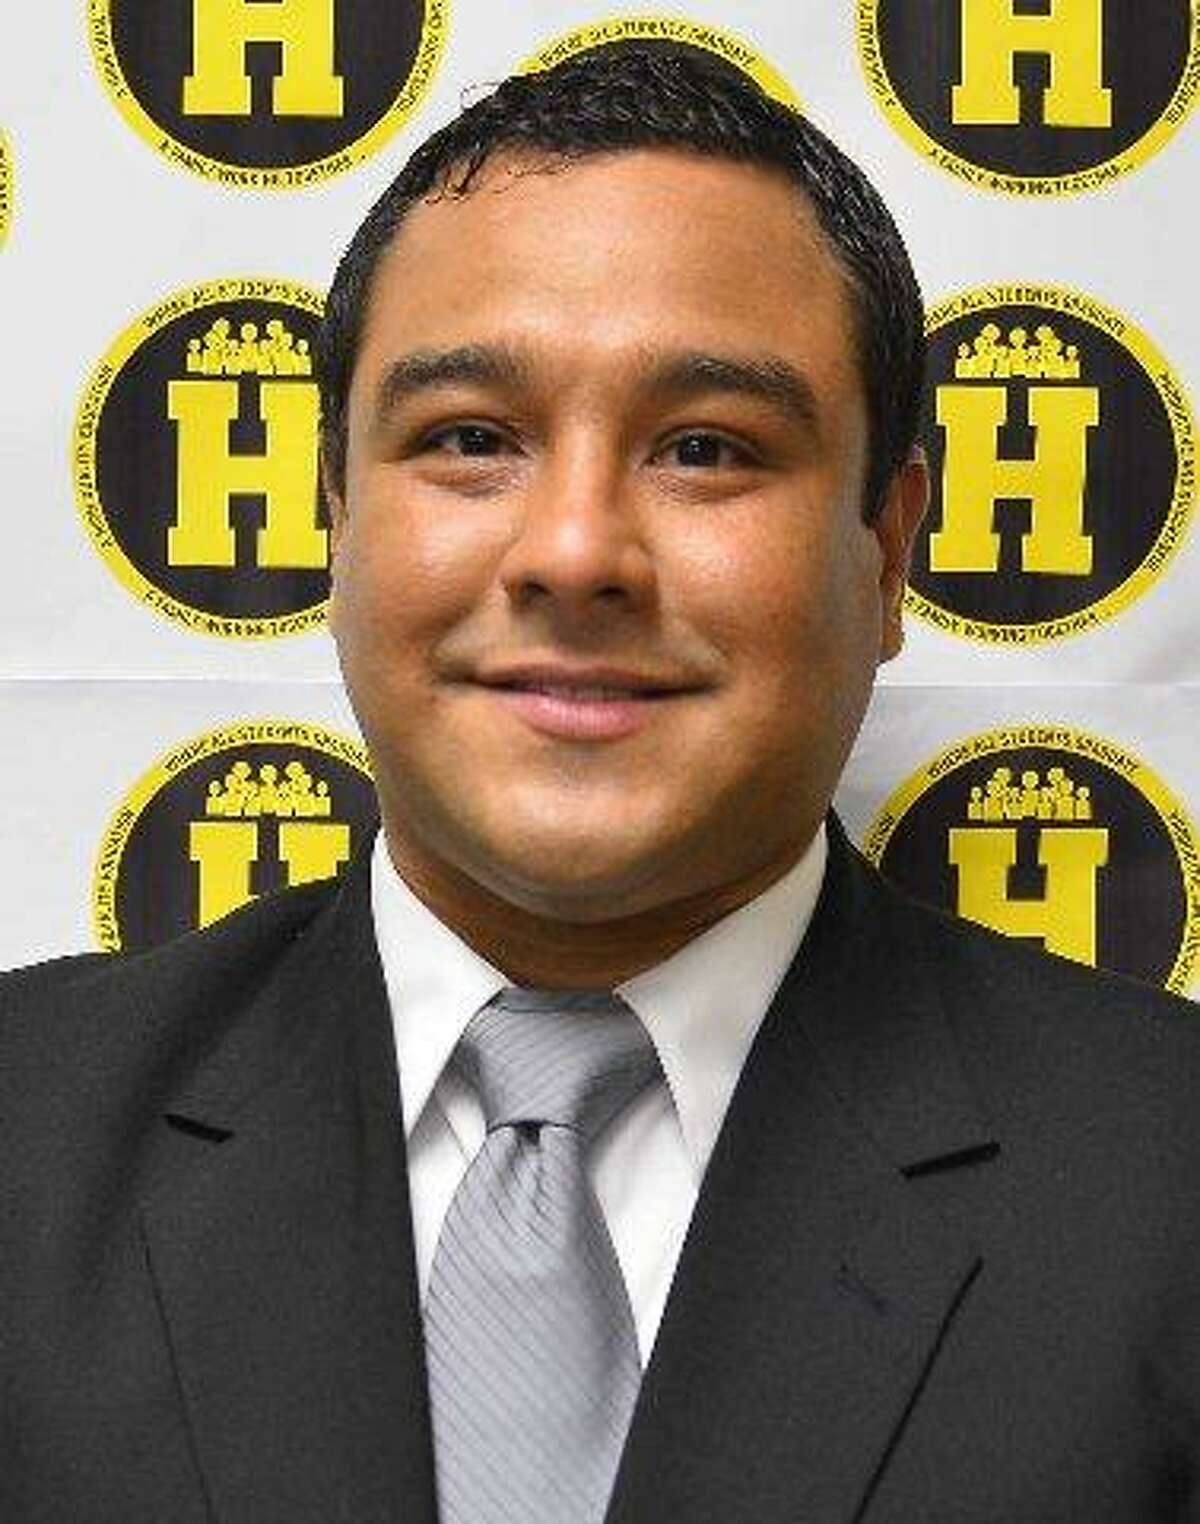 Harlandale ISD trustee Carlos Quezada is now a judge-elect and will leave the school board at the end of the year.